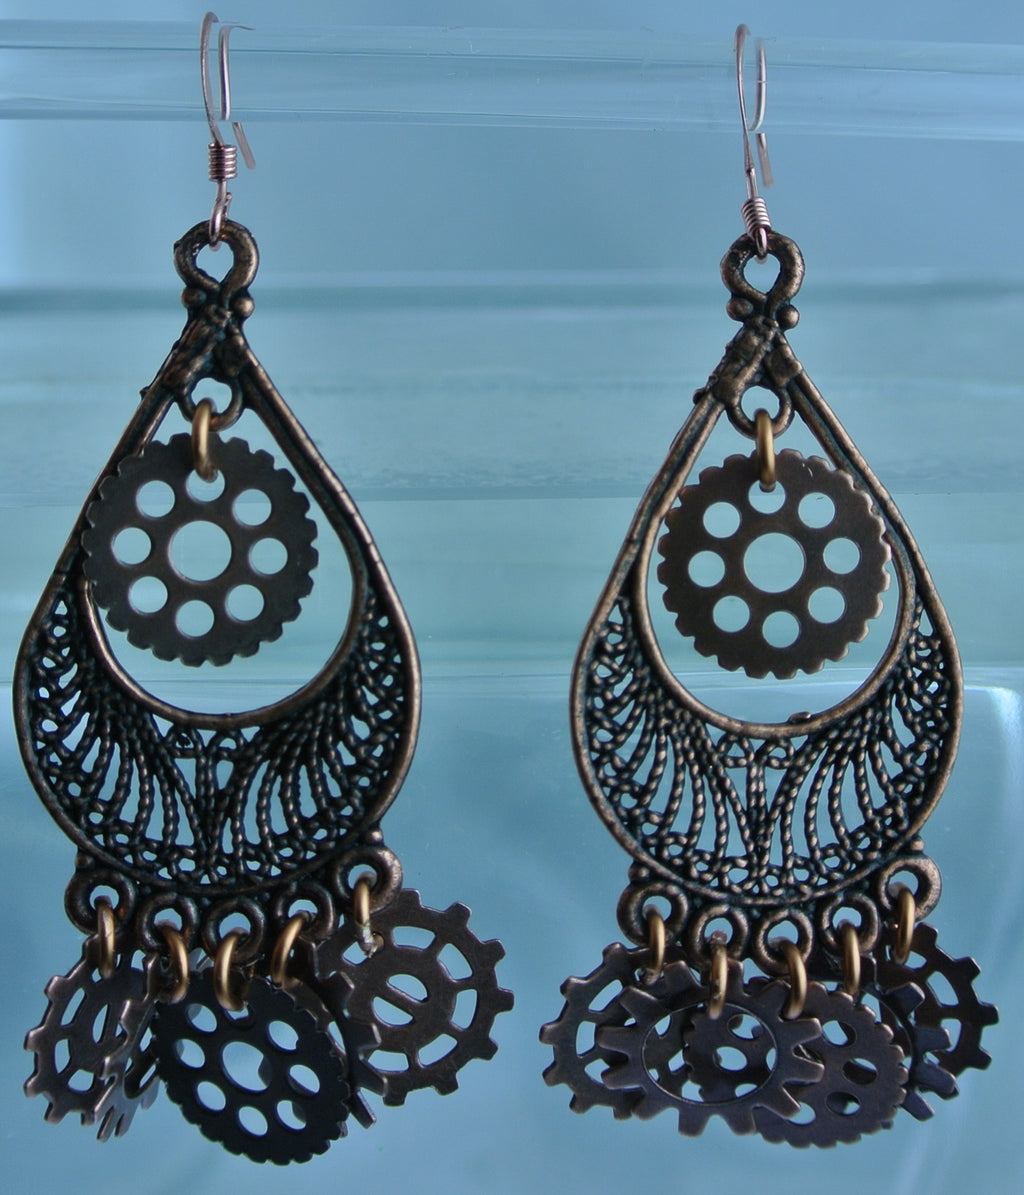 COPPER TEARDROP FILIGREE 6 GEARS PIERCED EARRINGS WATCH CLOCK STARR WILDE STEAMPUNK FORTRESS